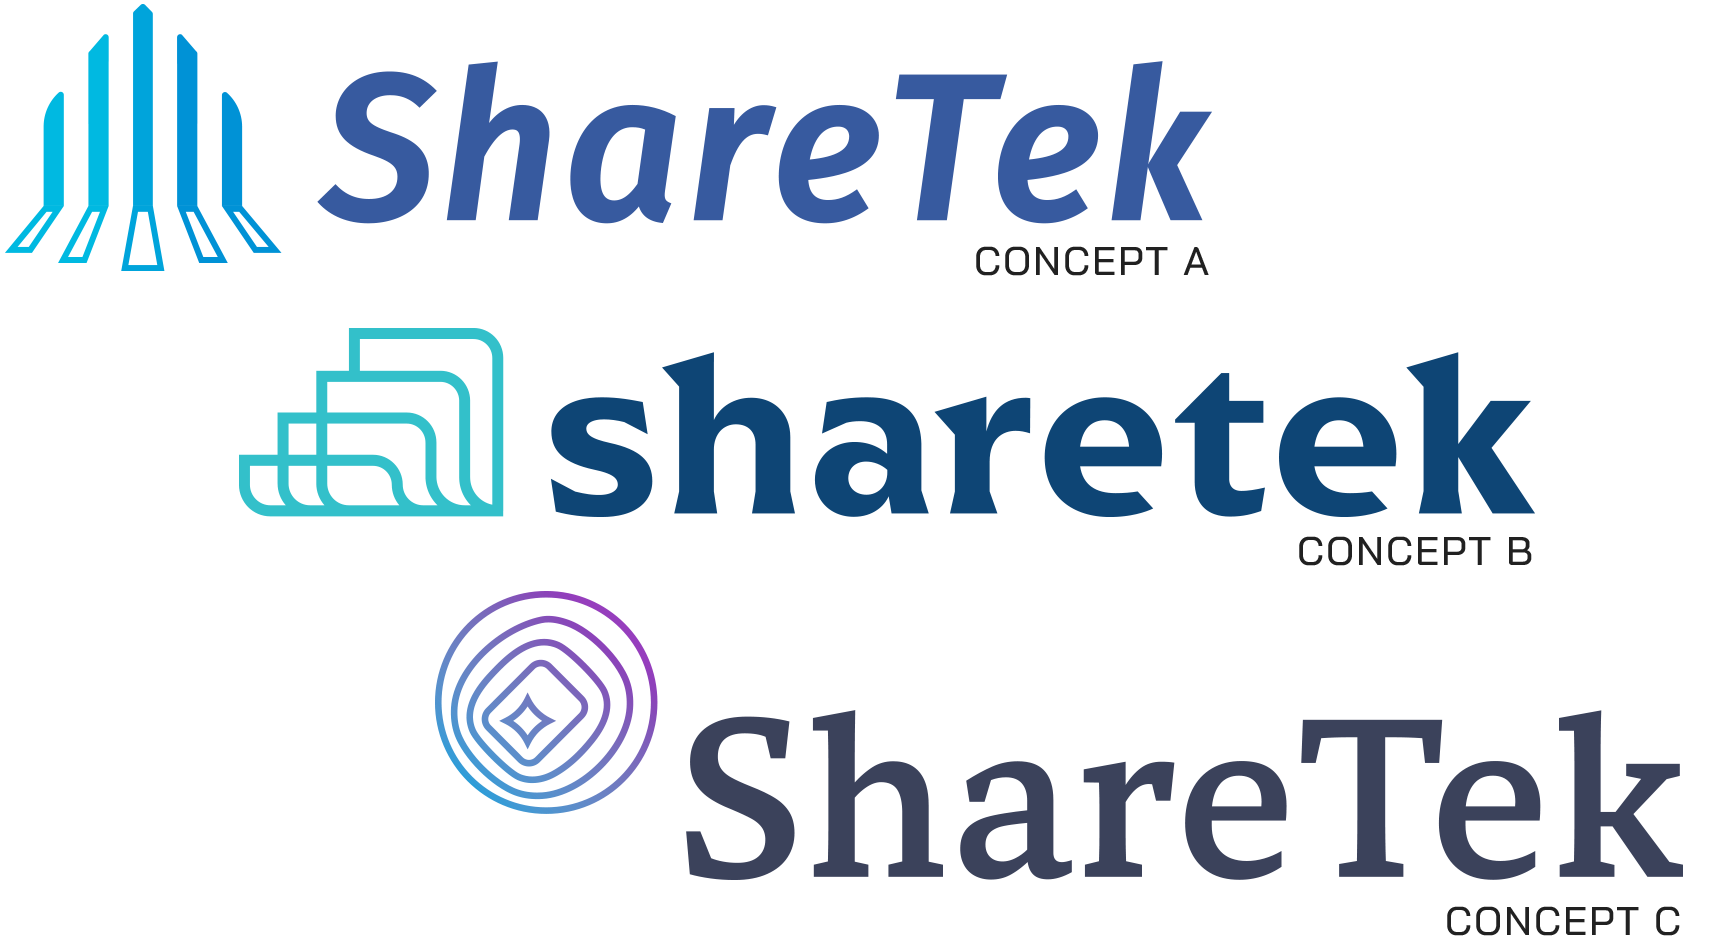 Presented logo concepts to ShareTek from top to bottom, Concept A: The Update, Concept B: The Evolution, and Concept C: The Departure.